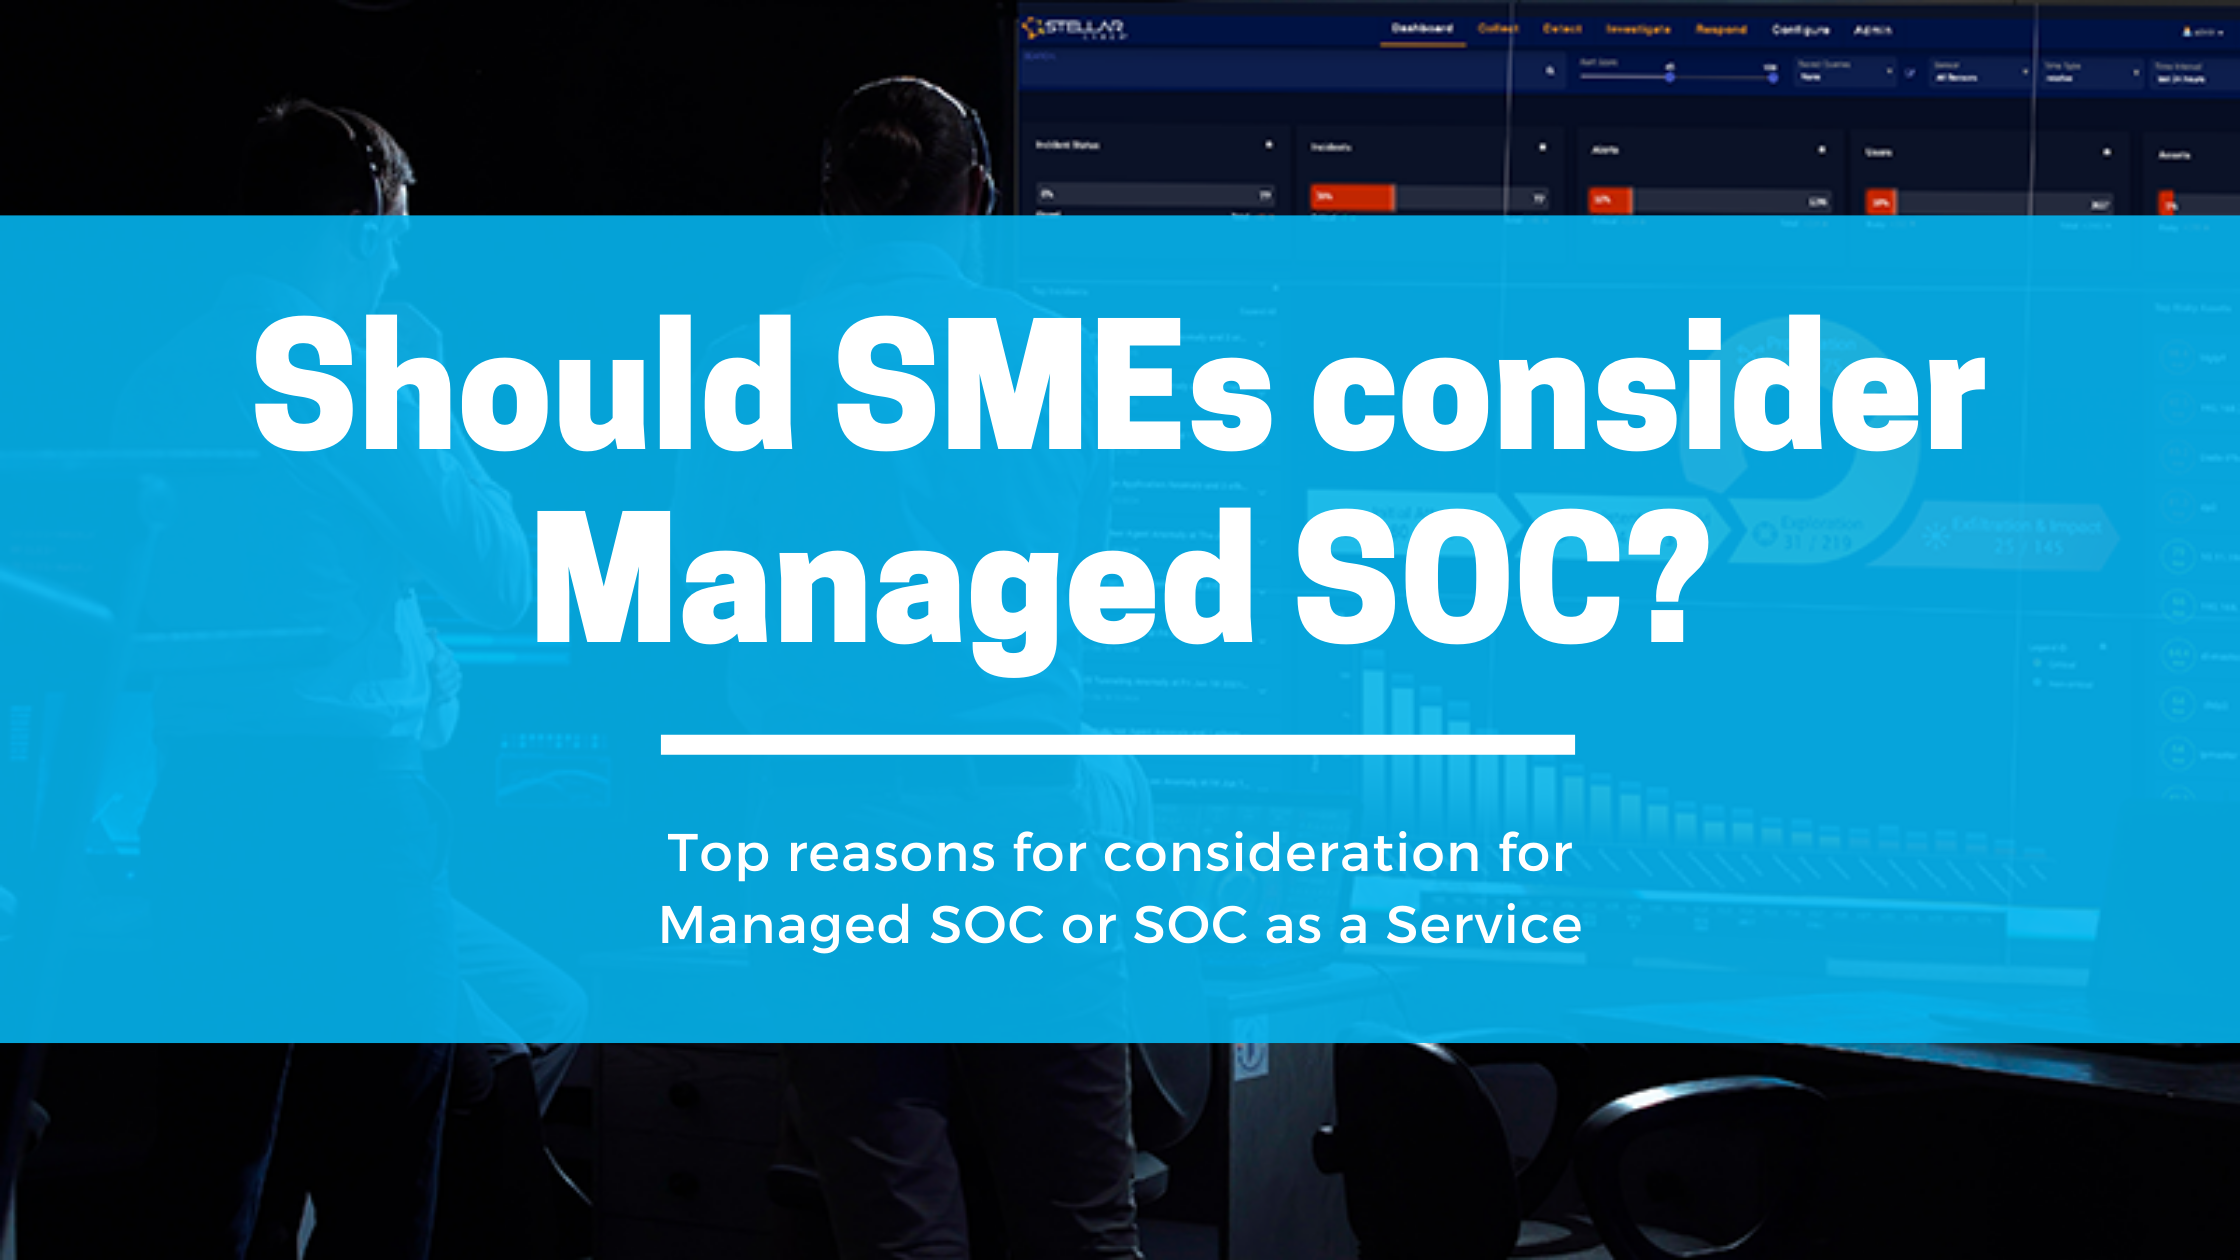 Should SMEs consider SOC as a Service?